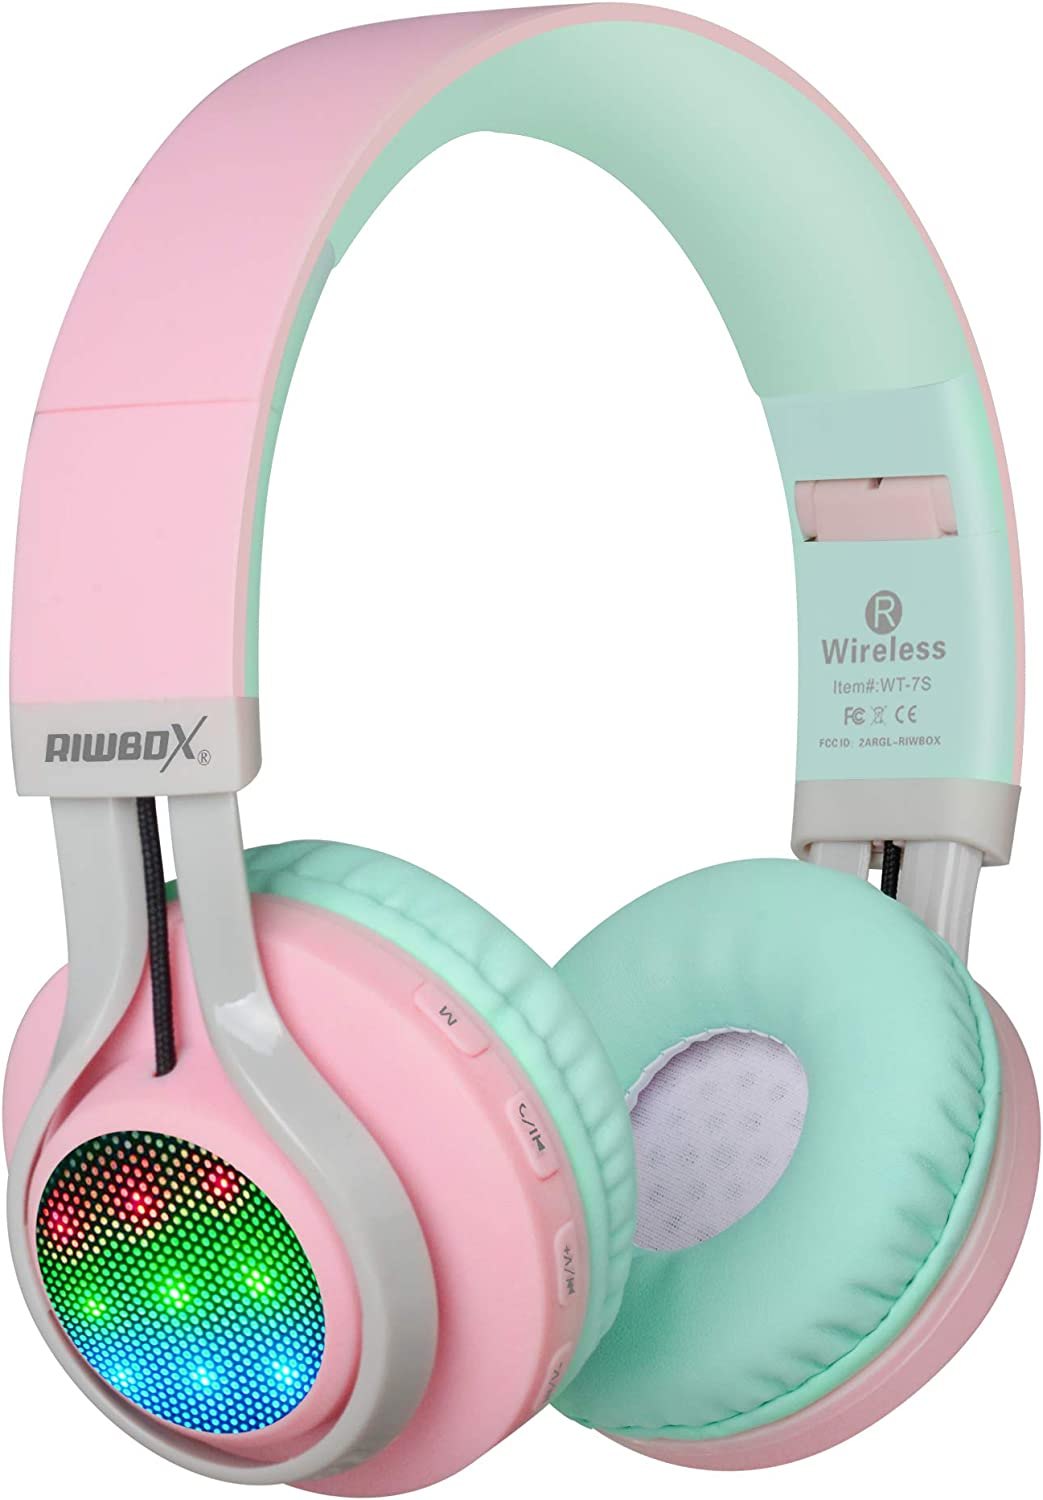 Auriculares Riwbox WT 7S inalámbricos con Bluetooth, luz LED, Plegables, con micrófono y Control de Volumen para PC, iPhone, TV, iPad (Rosa&Verde)